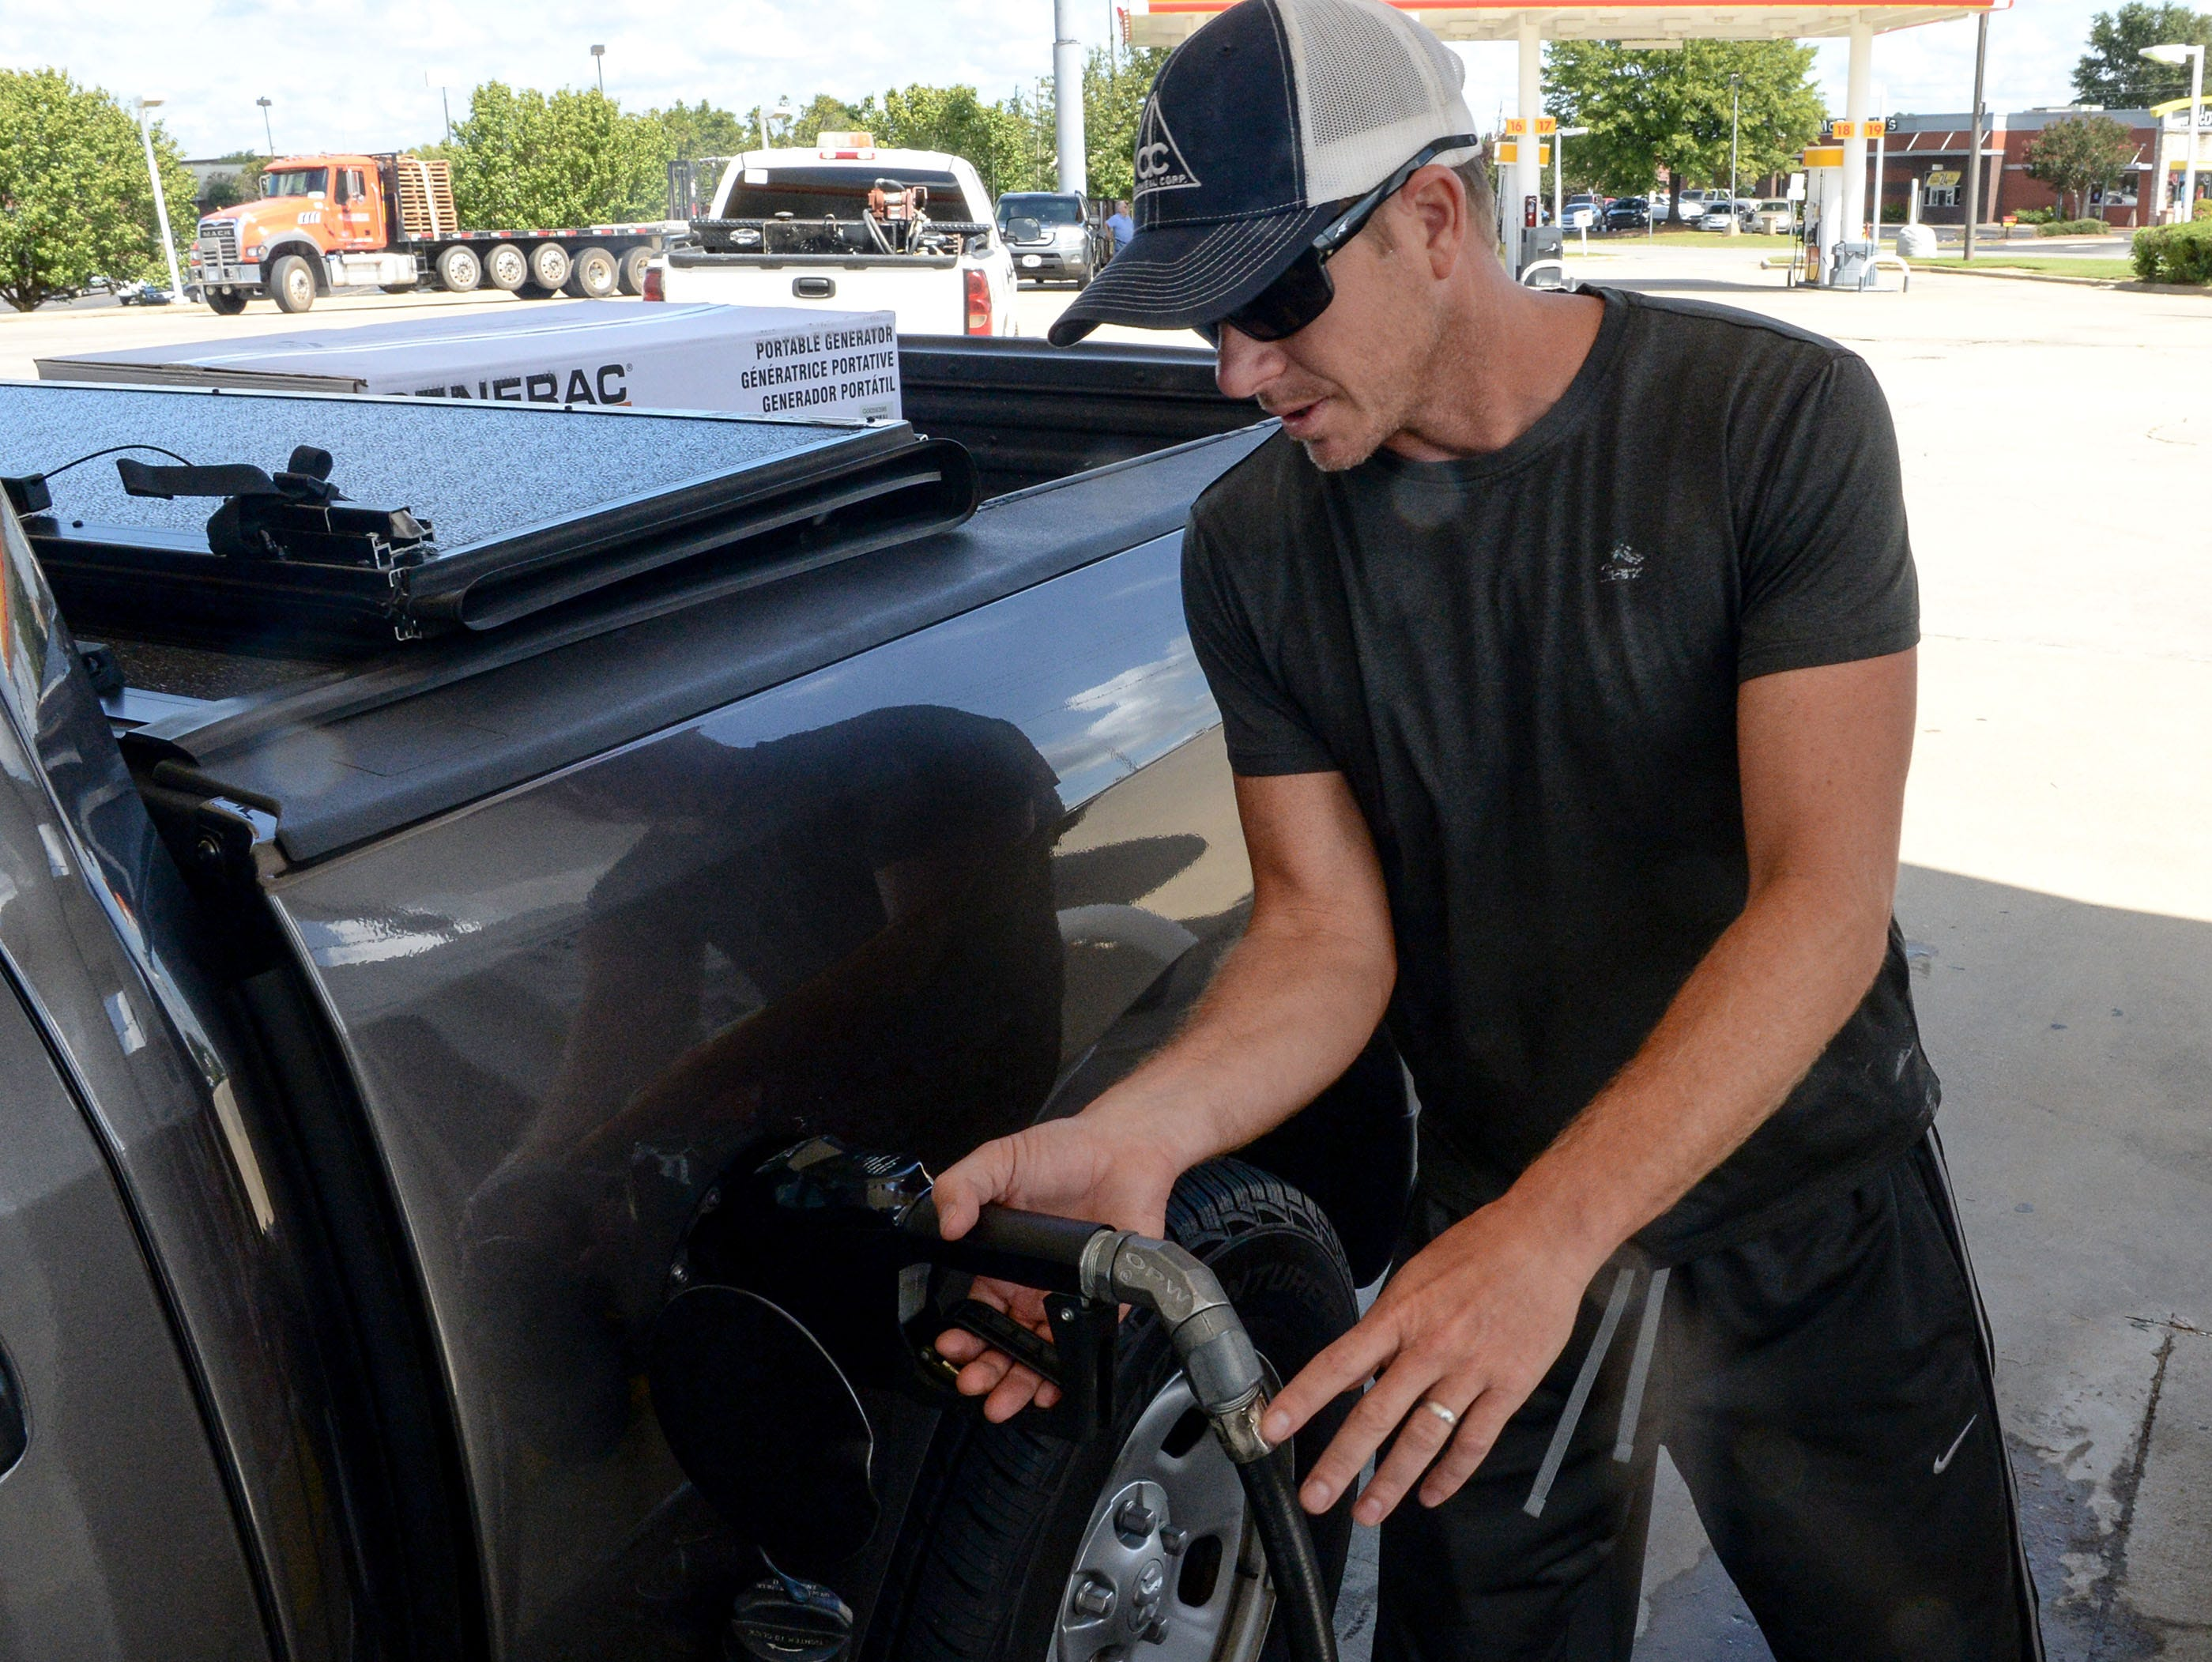 Chad Williams of Willow Springs, North Carolina, fills his gas tank up in Garner, N.C. on Tuesday, September 11, 2018. Williams also bought a generator as Hurricane Florence is expected to arrive in Wilmington, North Carolina late Thursday night through Friday morning. (Ken Ruinard / Greenville News / Gannett USA Today Network / 2018 )